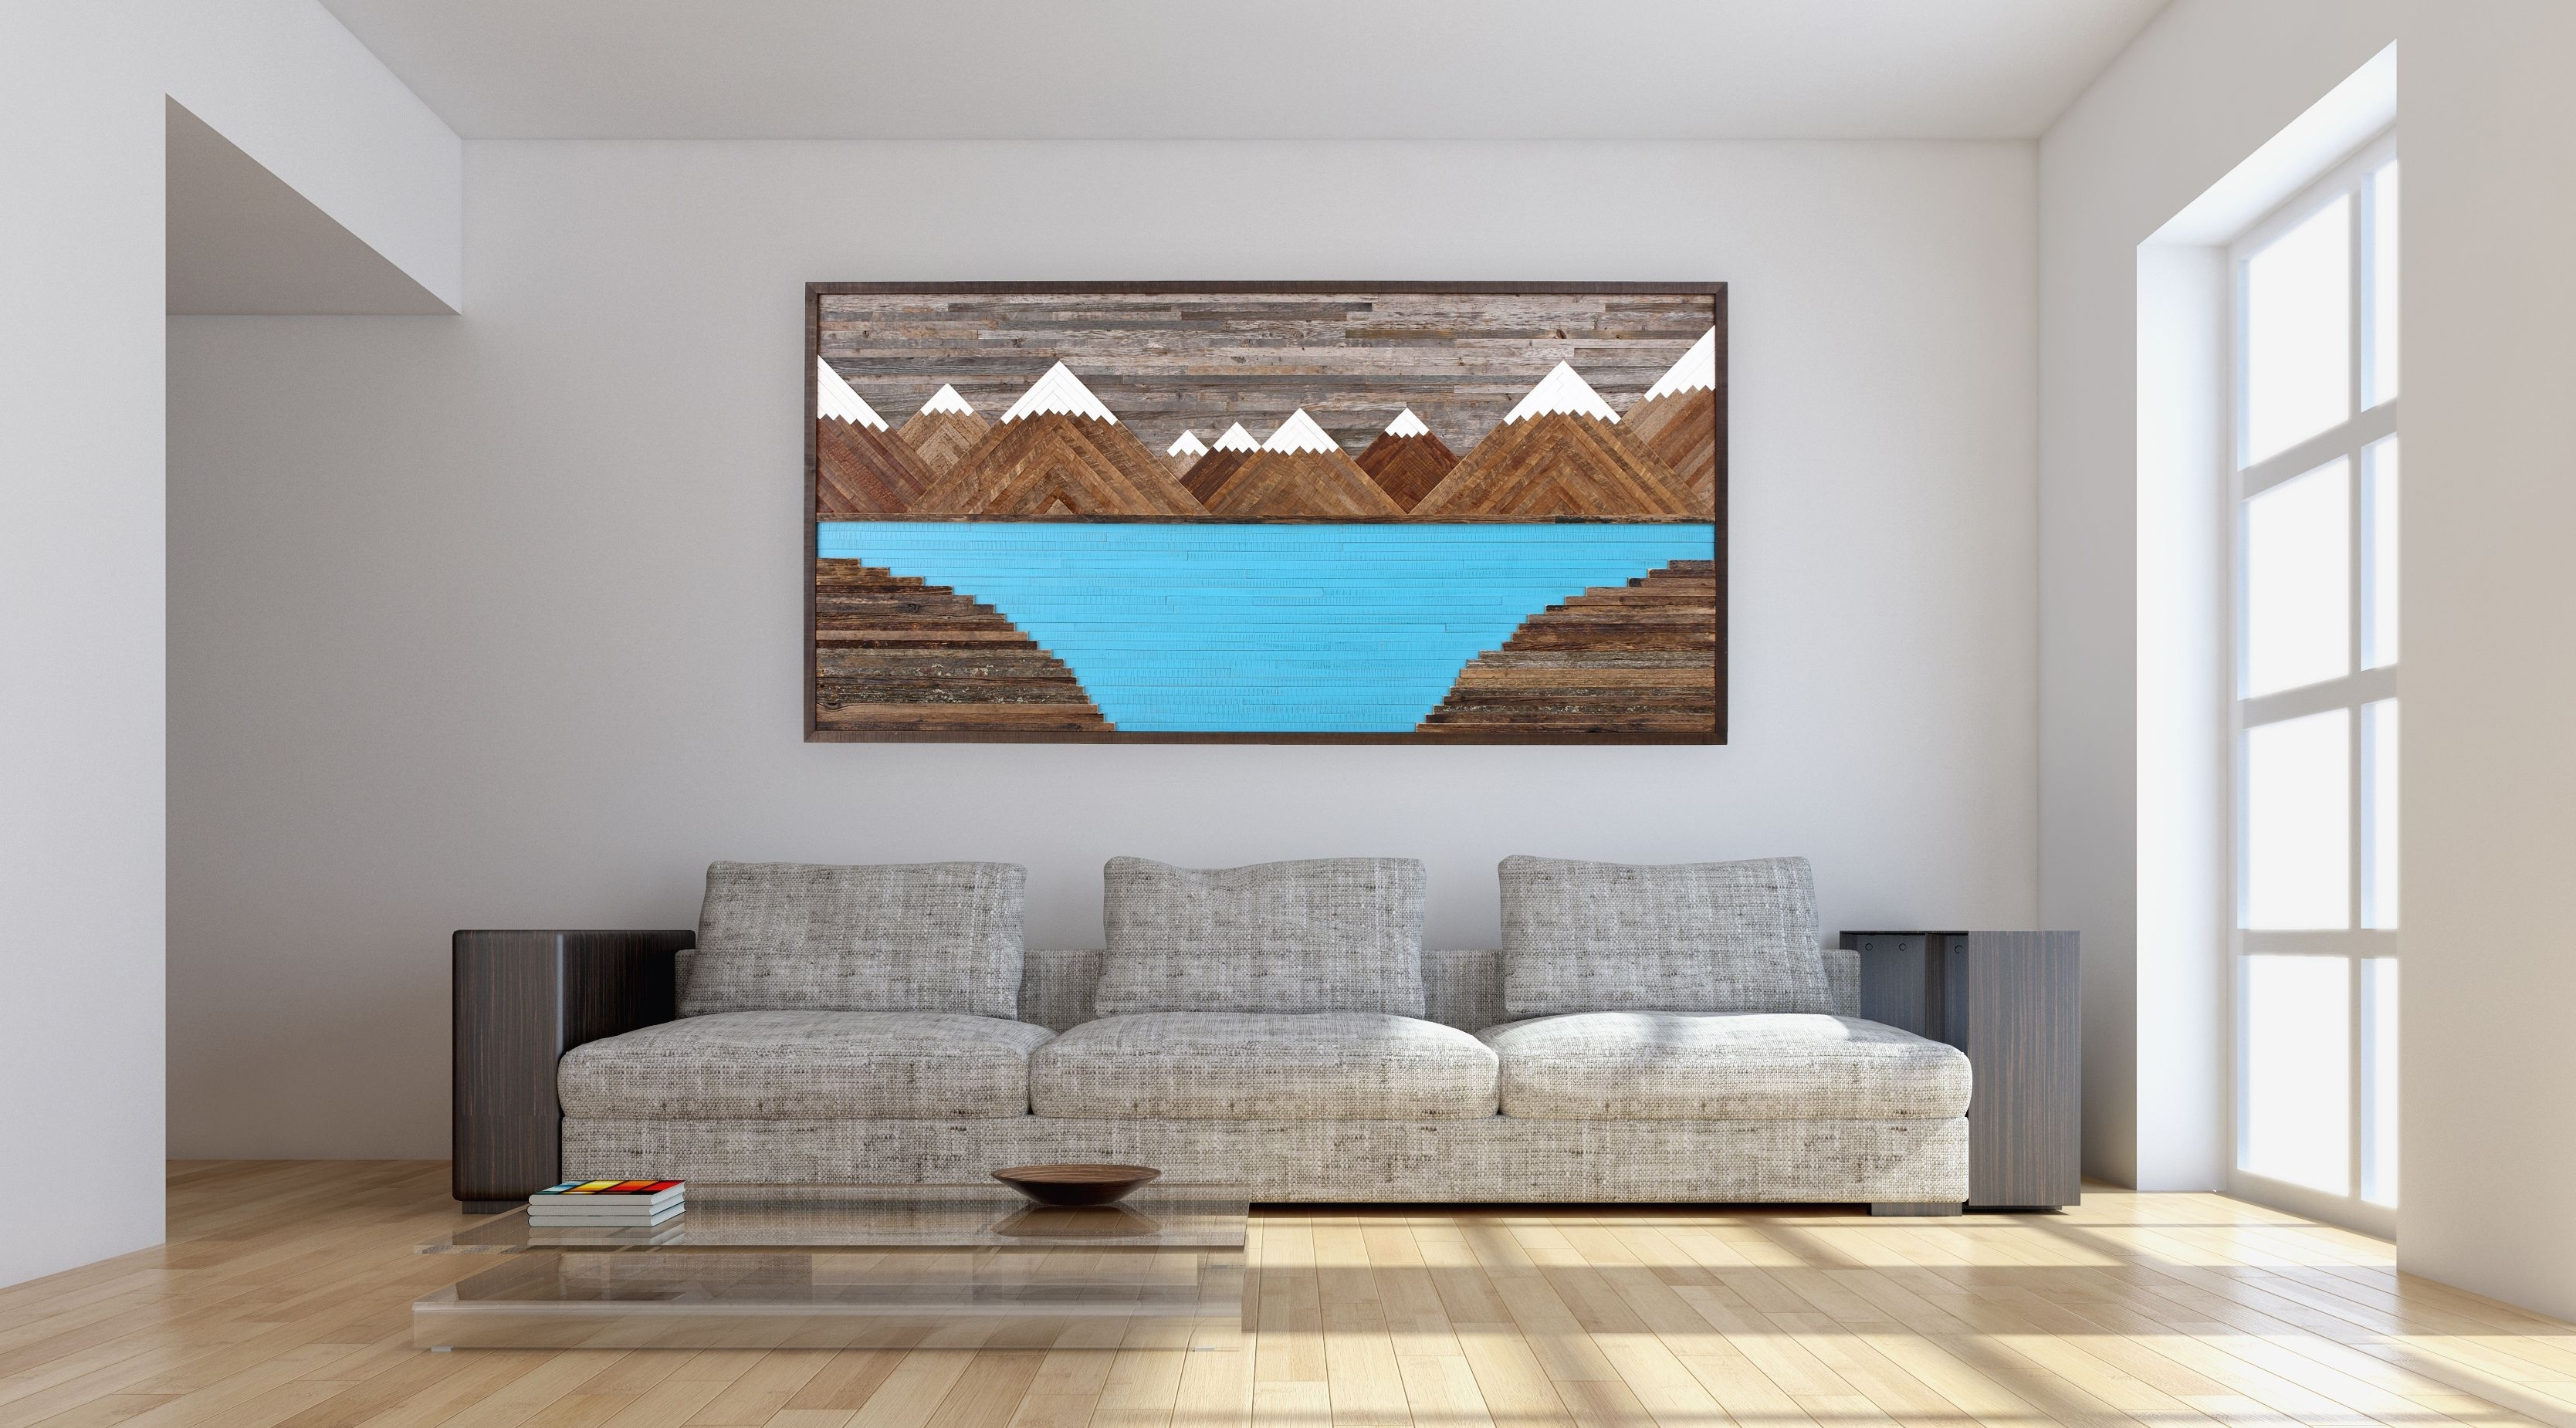 Handmade Glacier Mountain Landscape, Wood Wall Art, Reclaimed Wood Inside Most Popular Rustic Wall Art (View 12 of 15)